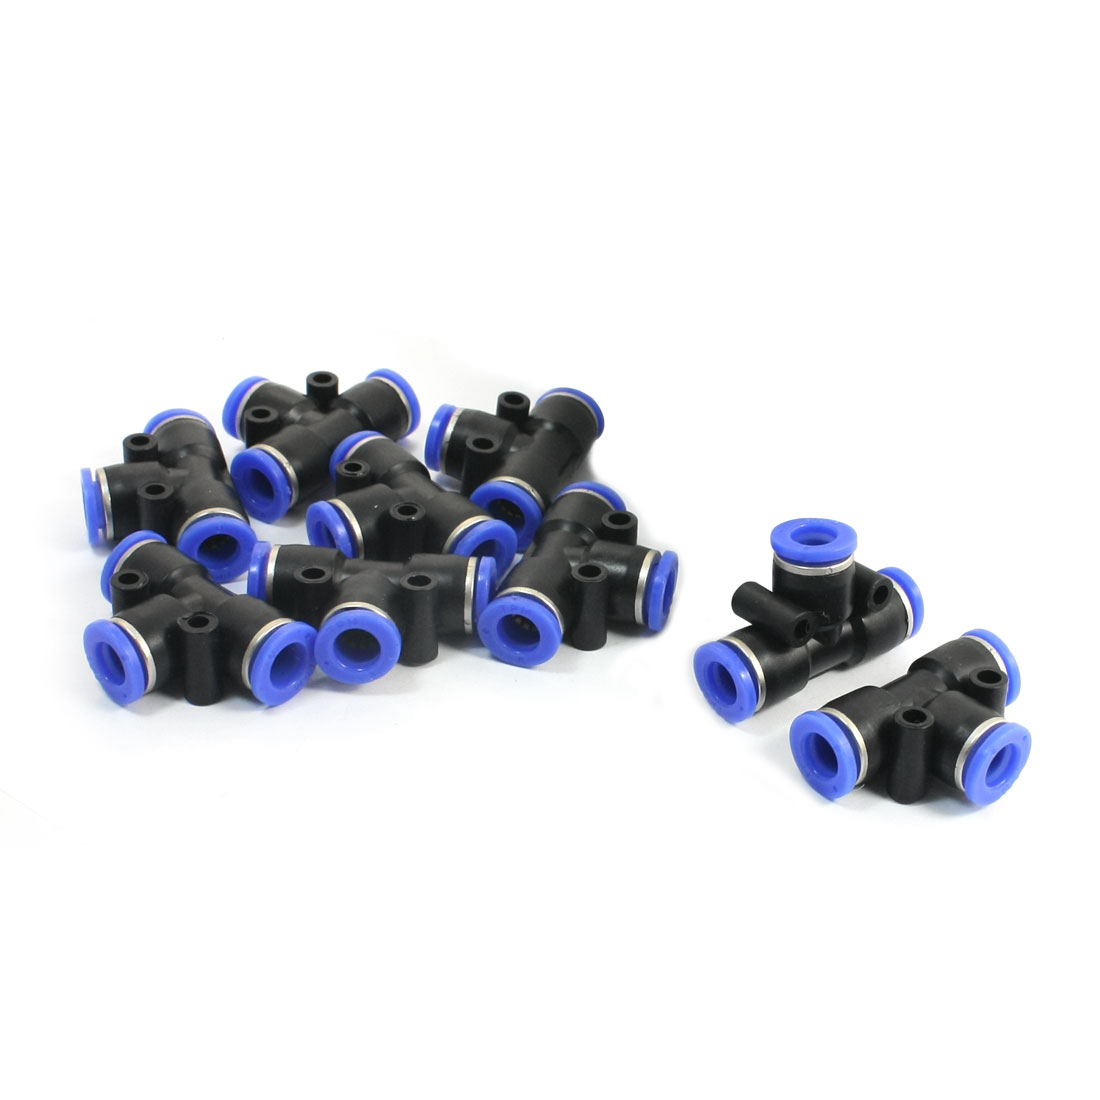 10 Pcs 8mm to 8mm Quick Connect 3 Ways T Shaped Tee Union Black Blue Plastic Pneumatic Push In Fittings Quick Joints Tubing Connectors